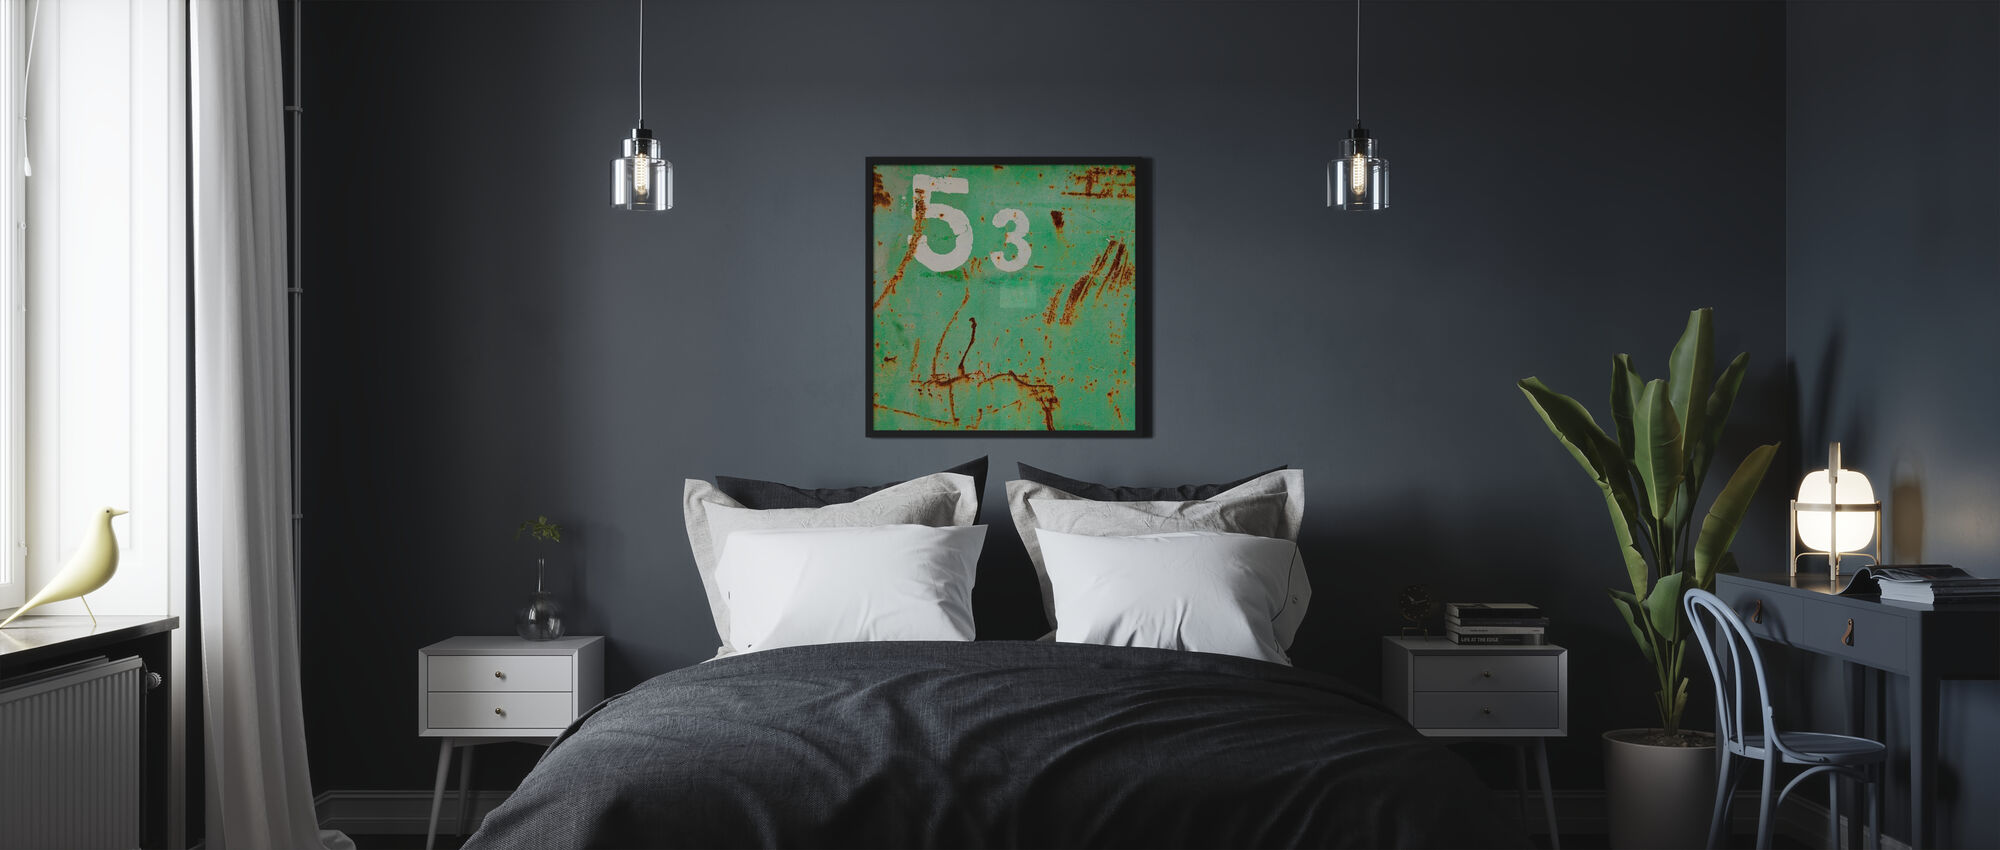 Grunge Fifty-three - Poster - Bedroom